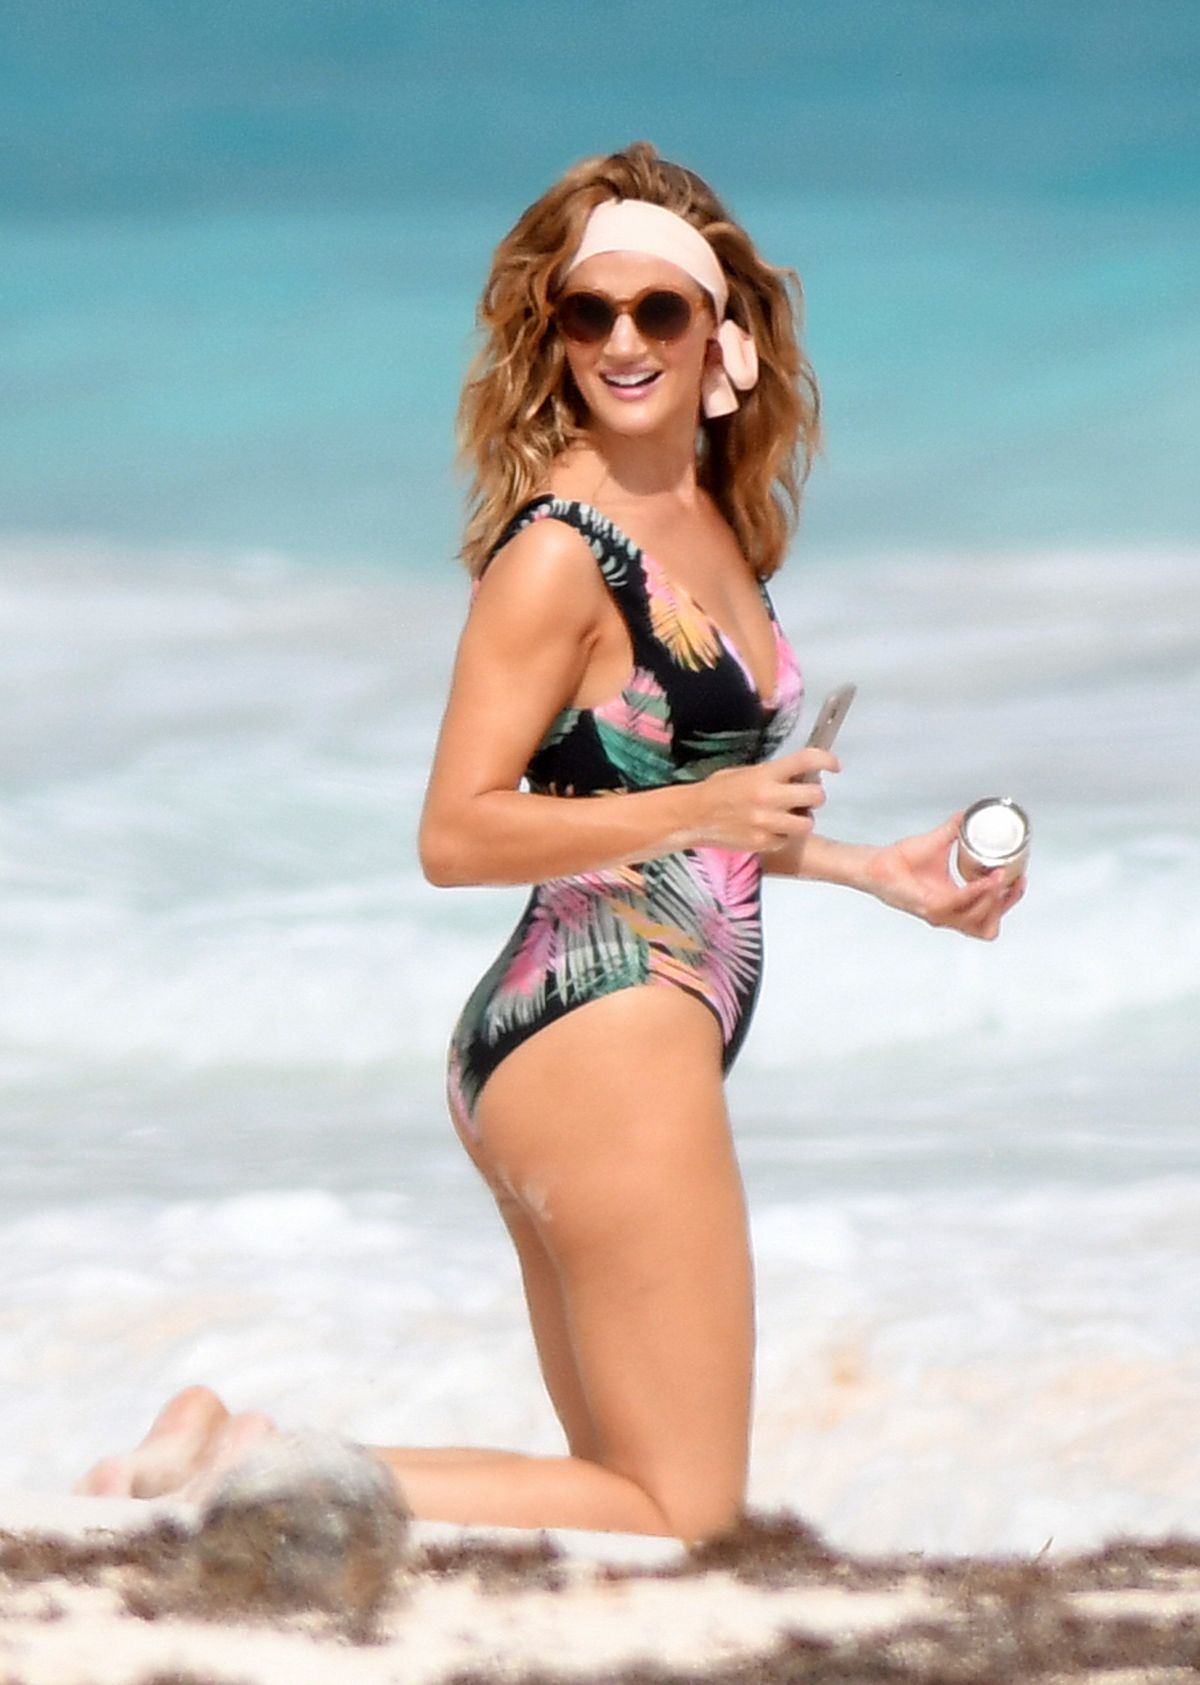 Rosie Huntington Whiteley Bikini Photoshoot at a Beach in the Bahamas Pic 6 of 35